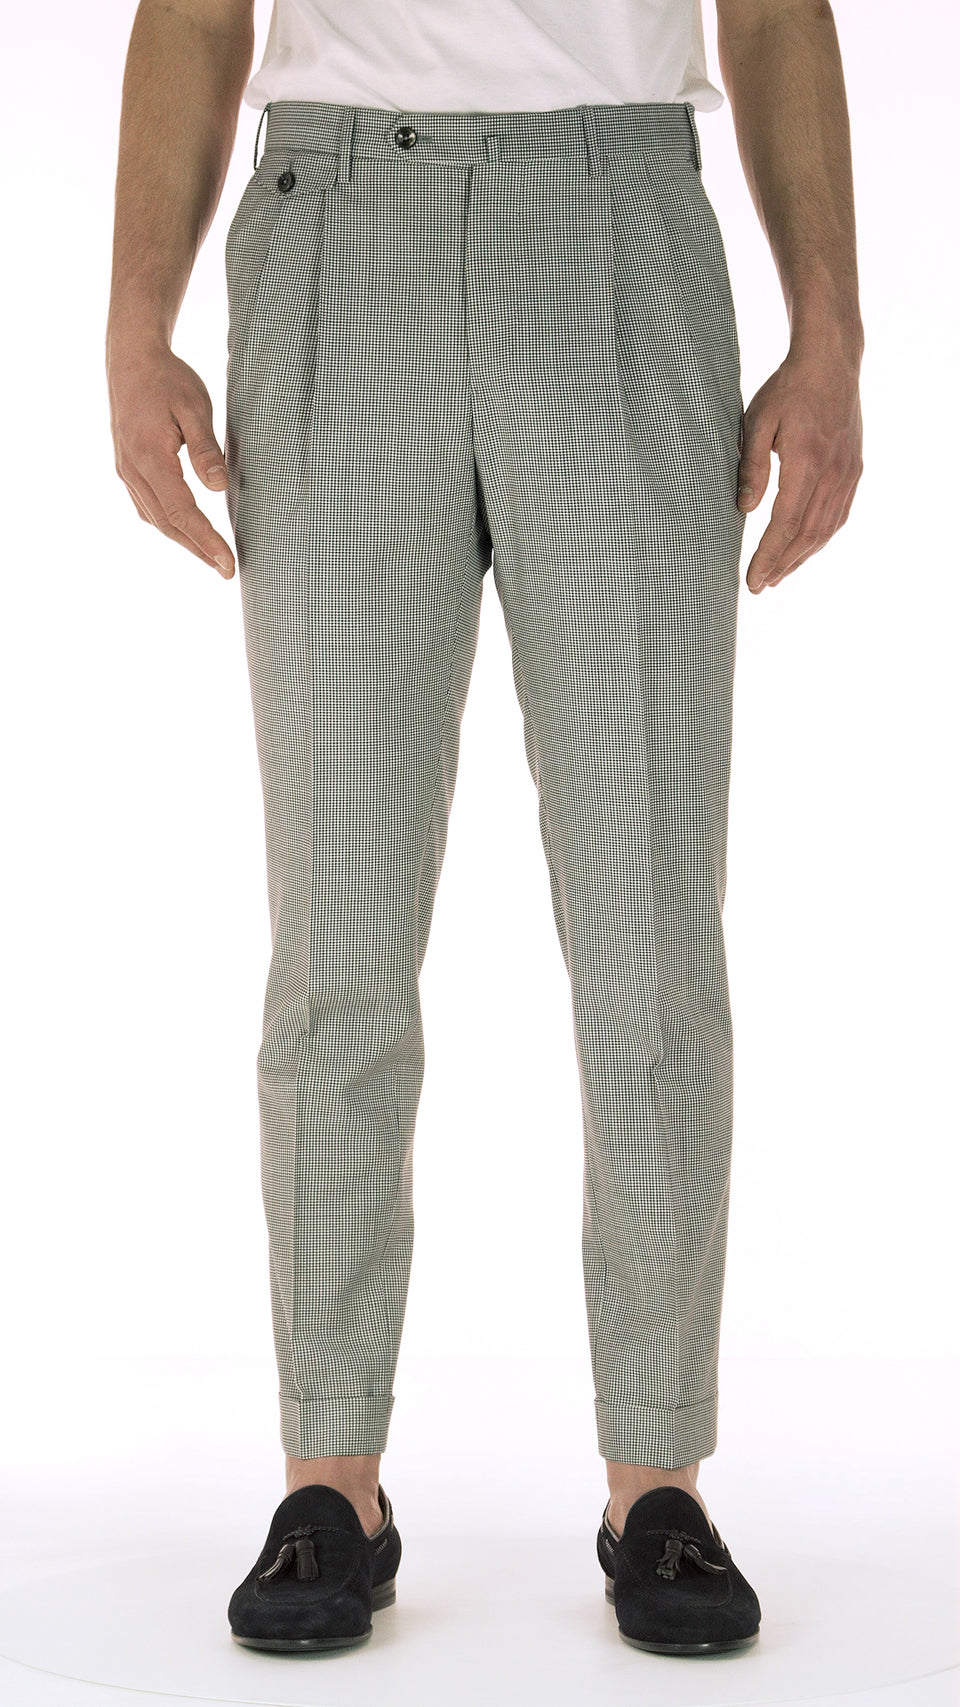 Gentleman Fit - 2 Pleats - Wool